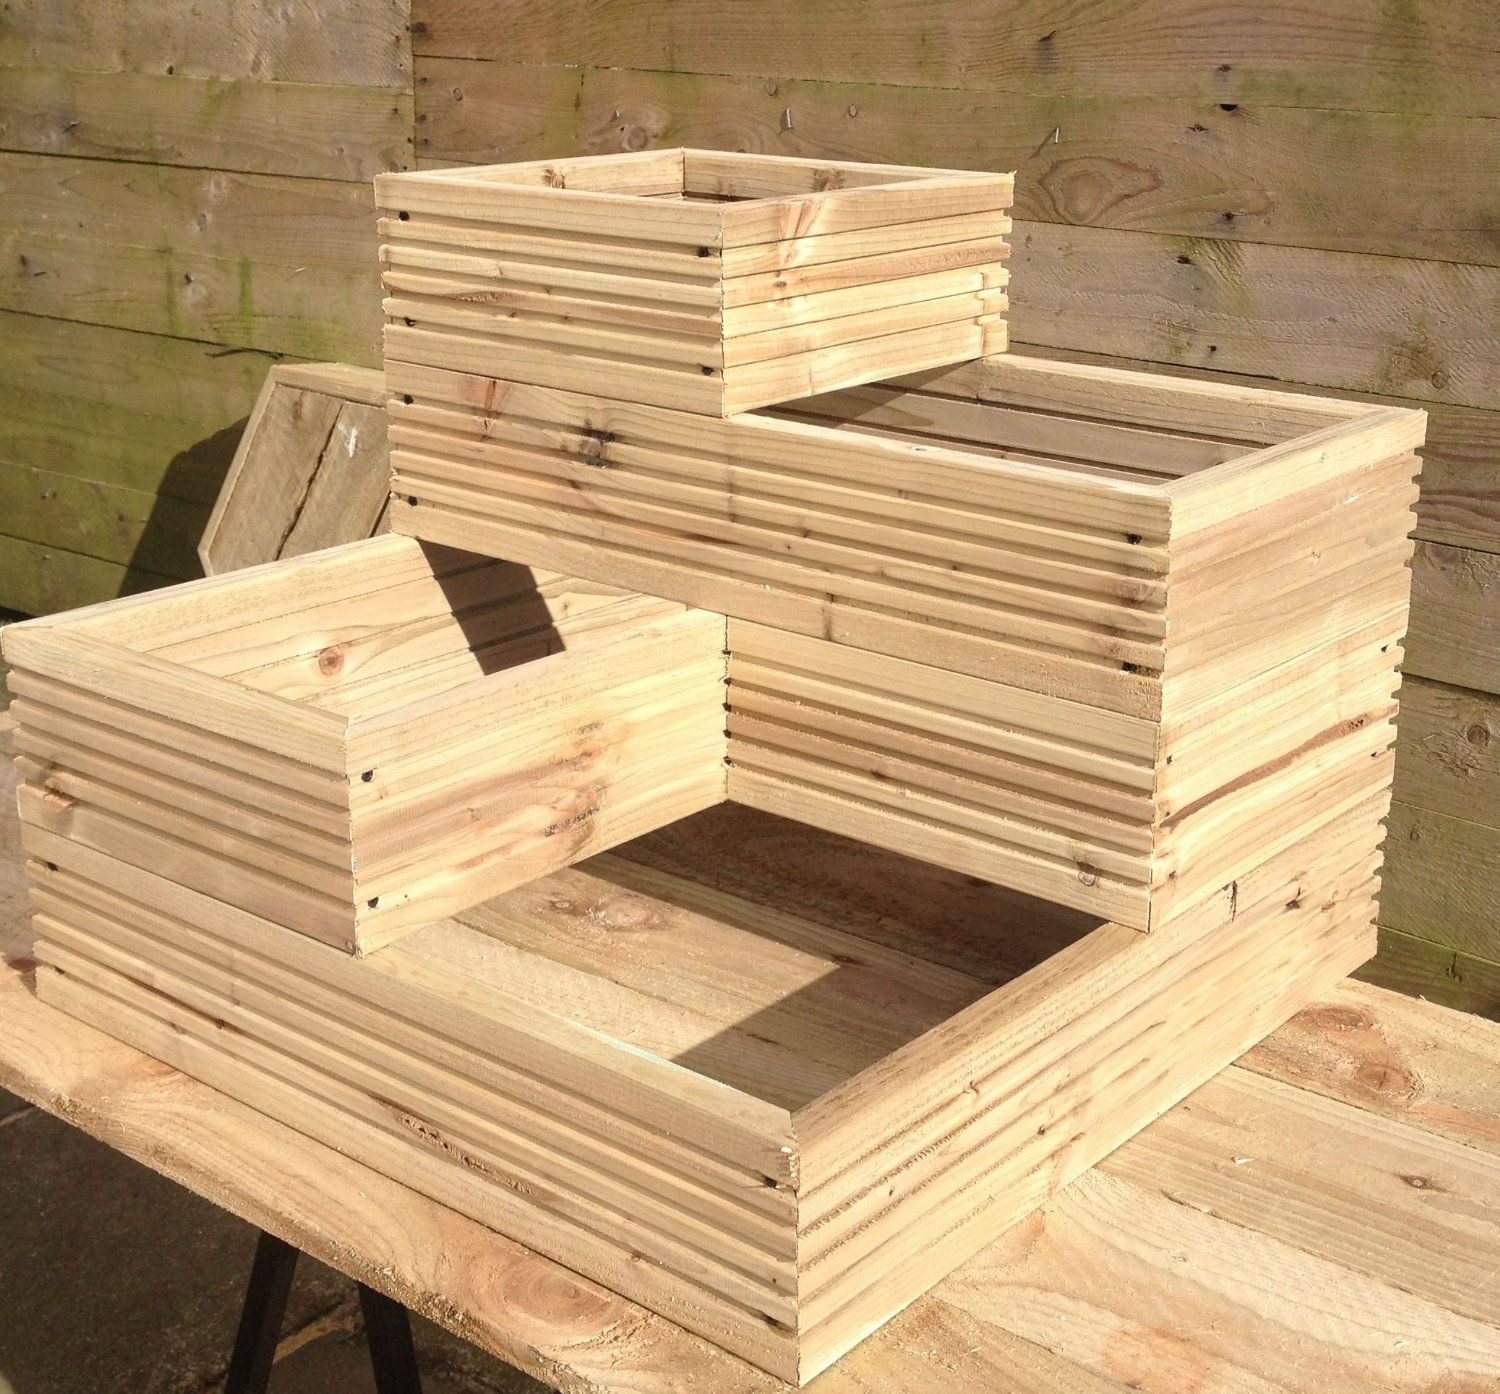 Large 4 Teir Wooden Planter Ready Assembled Amazon Co Uk 400 x 300